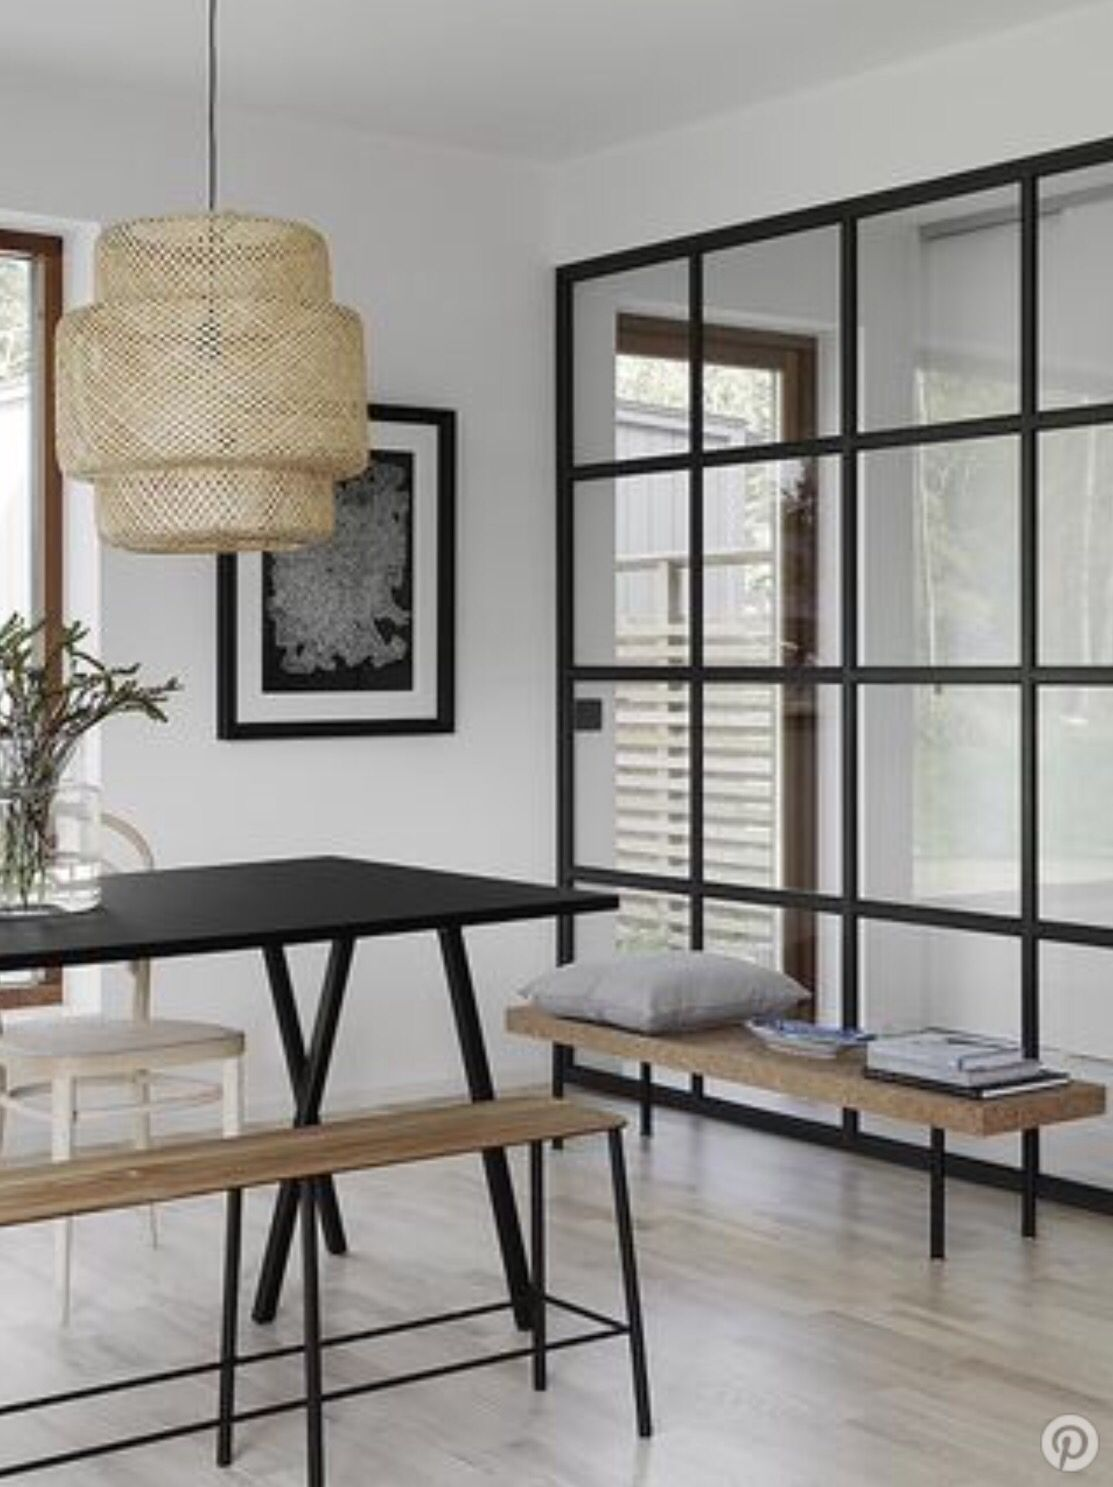 Ikea Sinnerlig A Serene Nordic Apartment with